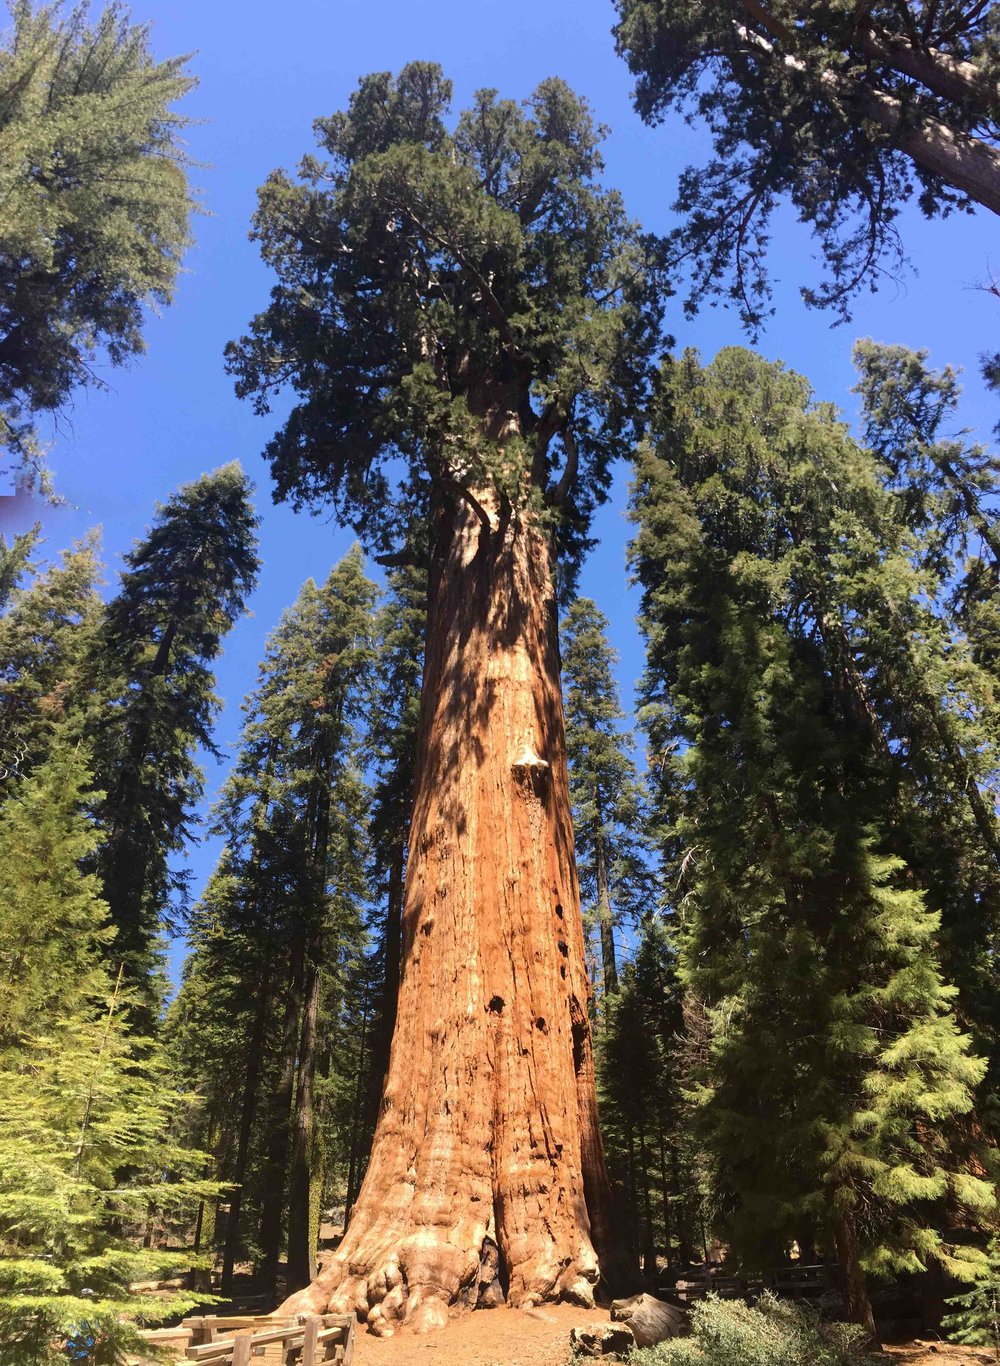 General Sherman Largest Tree Earth - Dr Reese Halter.jpg